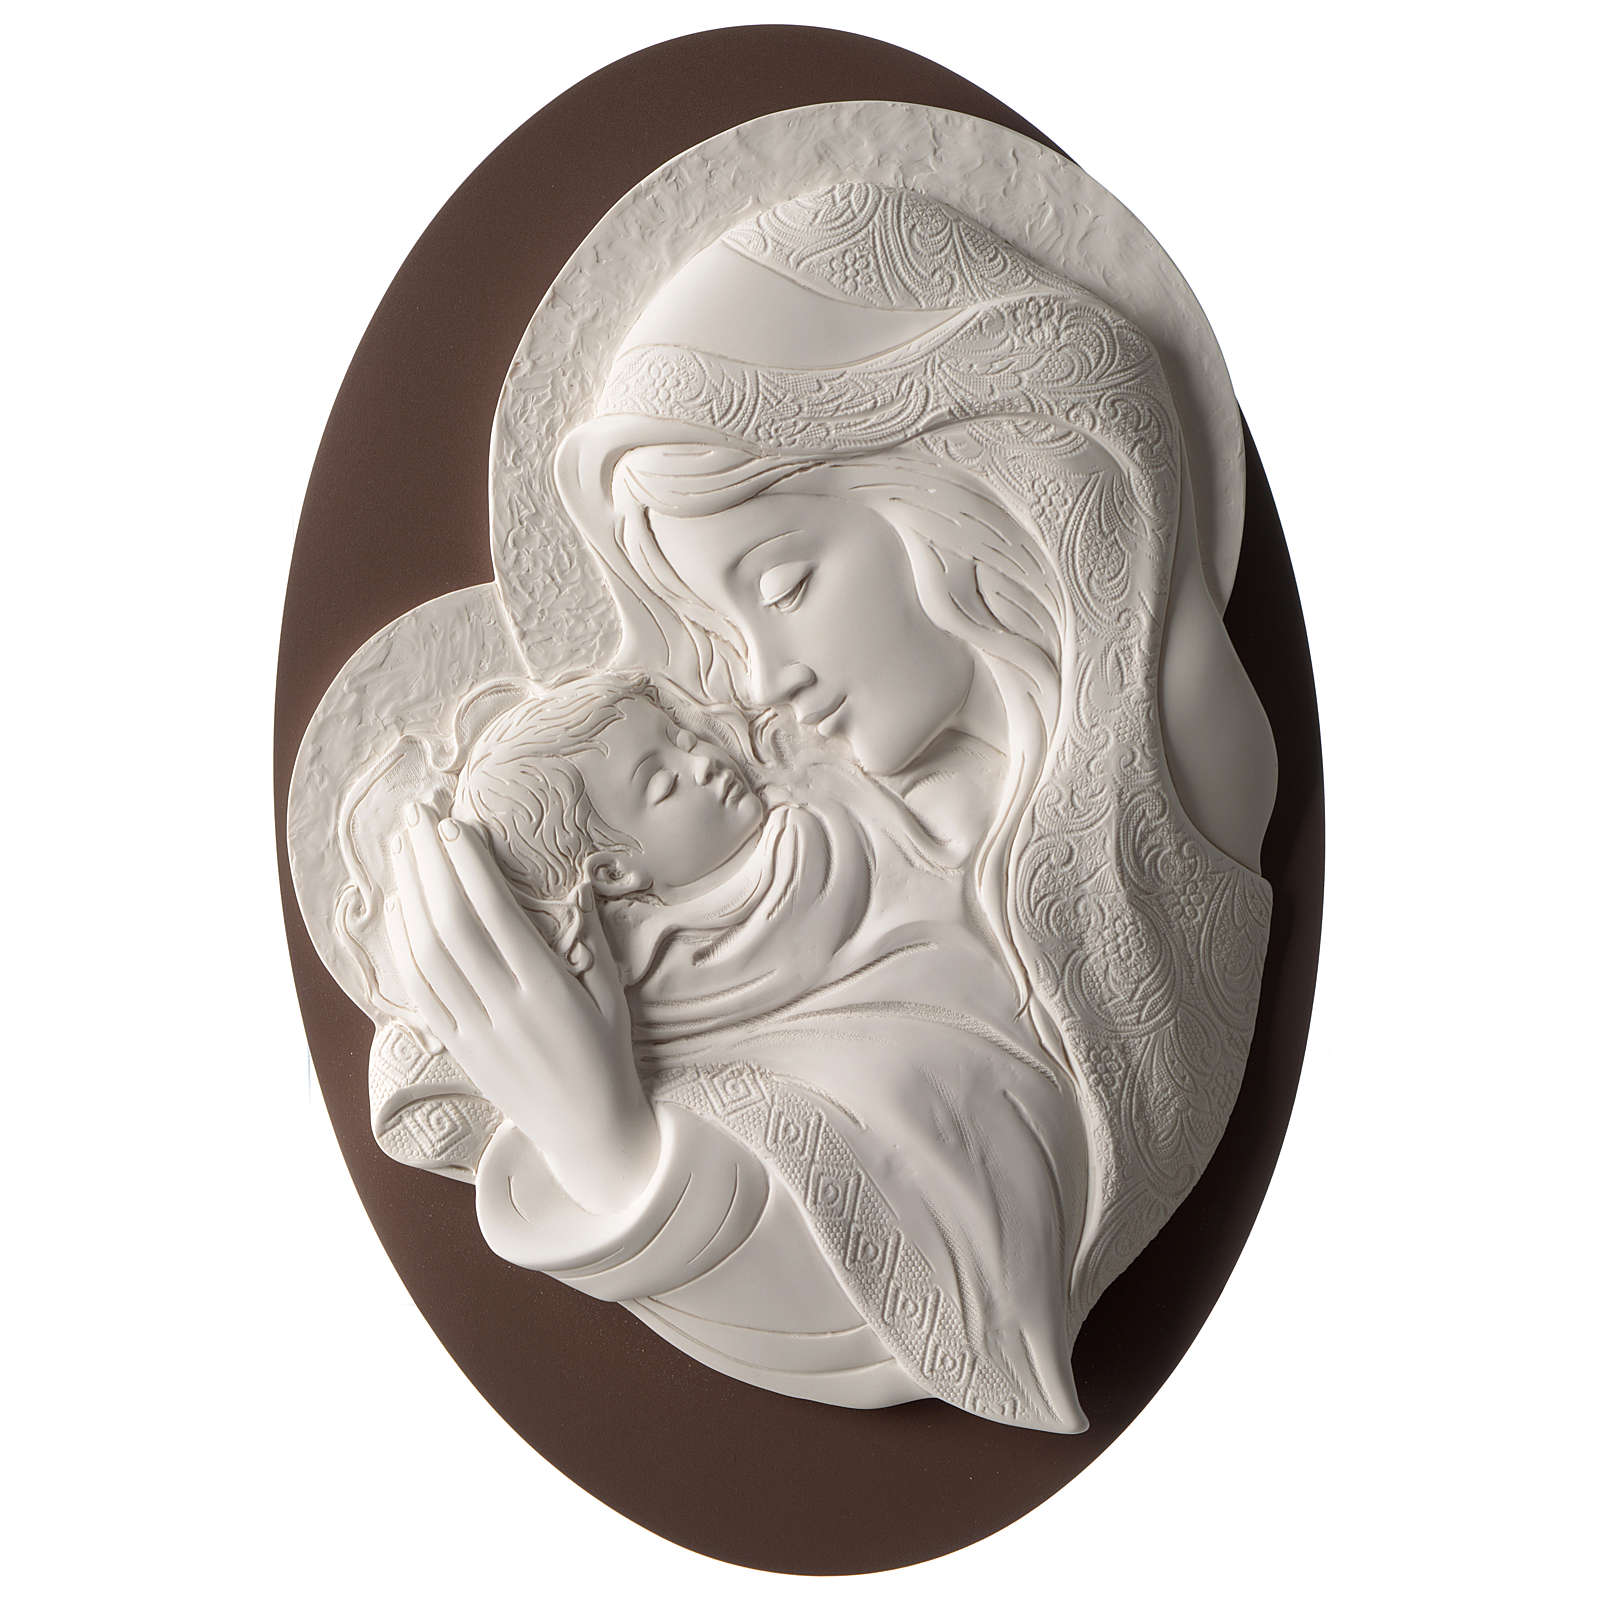 Mary with Child, oval bas-relief in resin and wood 3